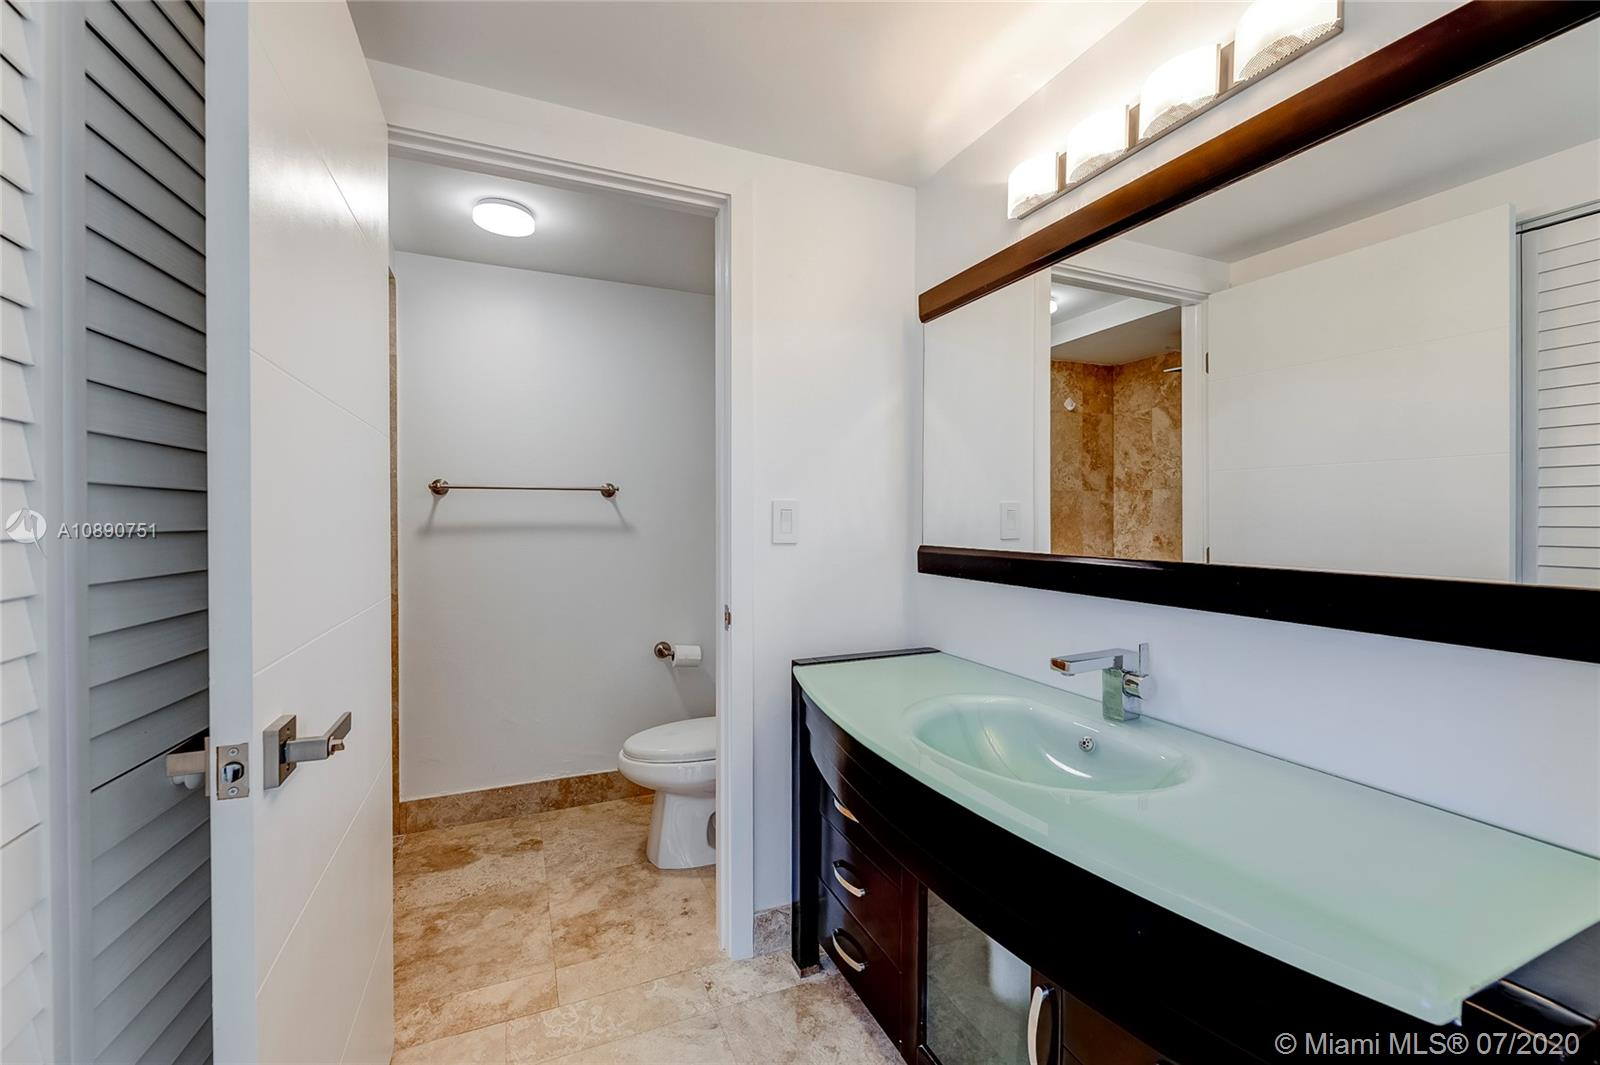 Photo of 425 Poinciana Island Drive #1444, Sunny Isles Beach, Florida, 33160 - Second room view from dressing area of en suite bathroom